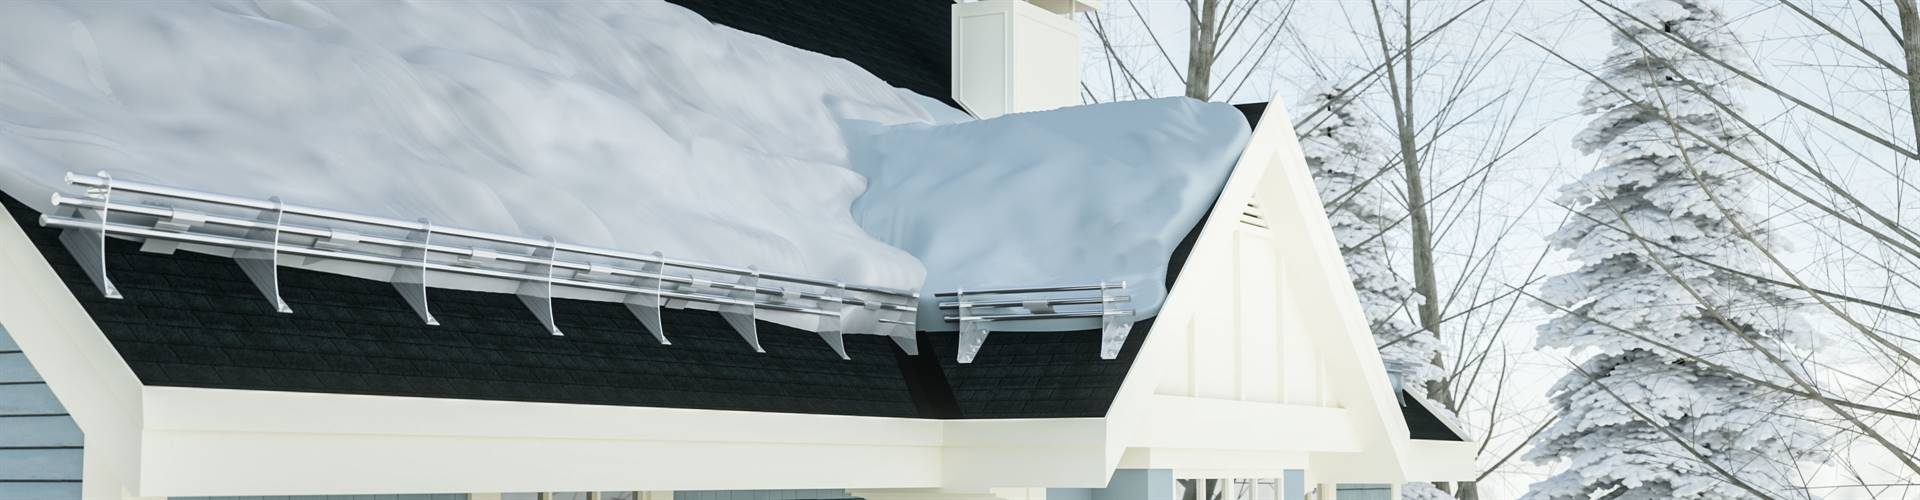 Snow Guards for Asphalt Shingle Roofing